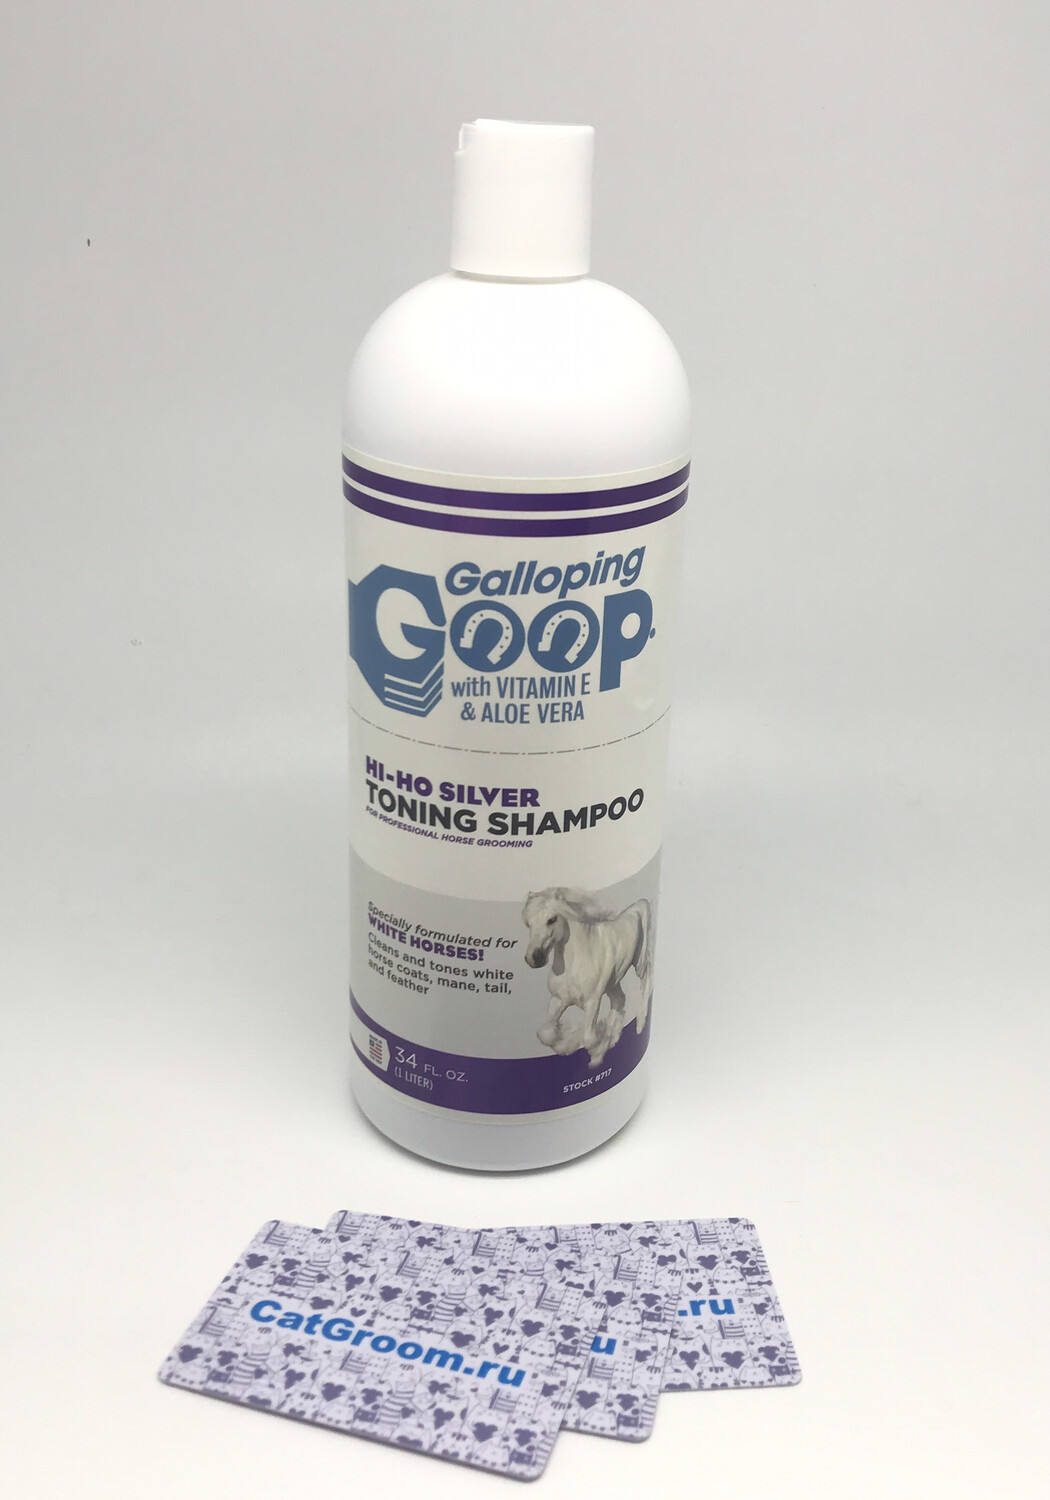 #717 Galloping Goop High-Ho Silver Toning Shampoo 34 oz. Squeeze Bottle